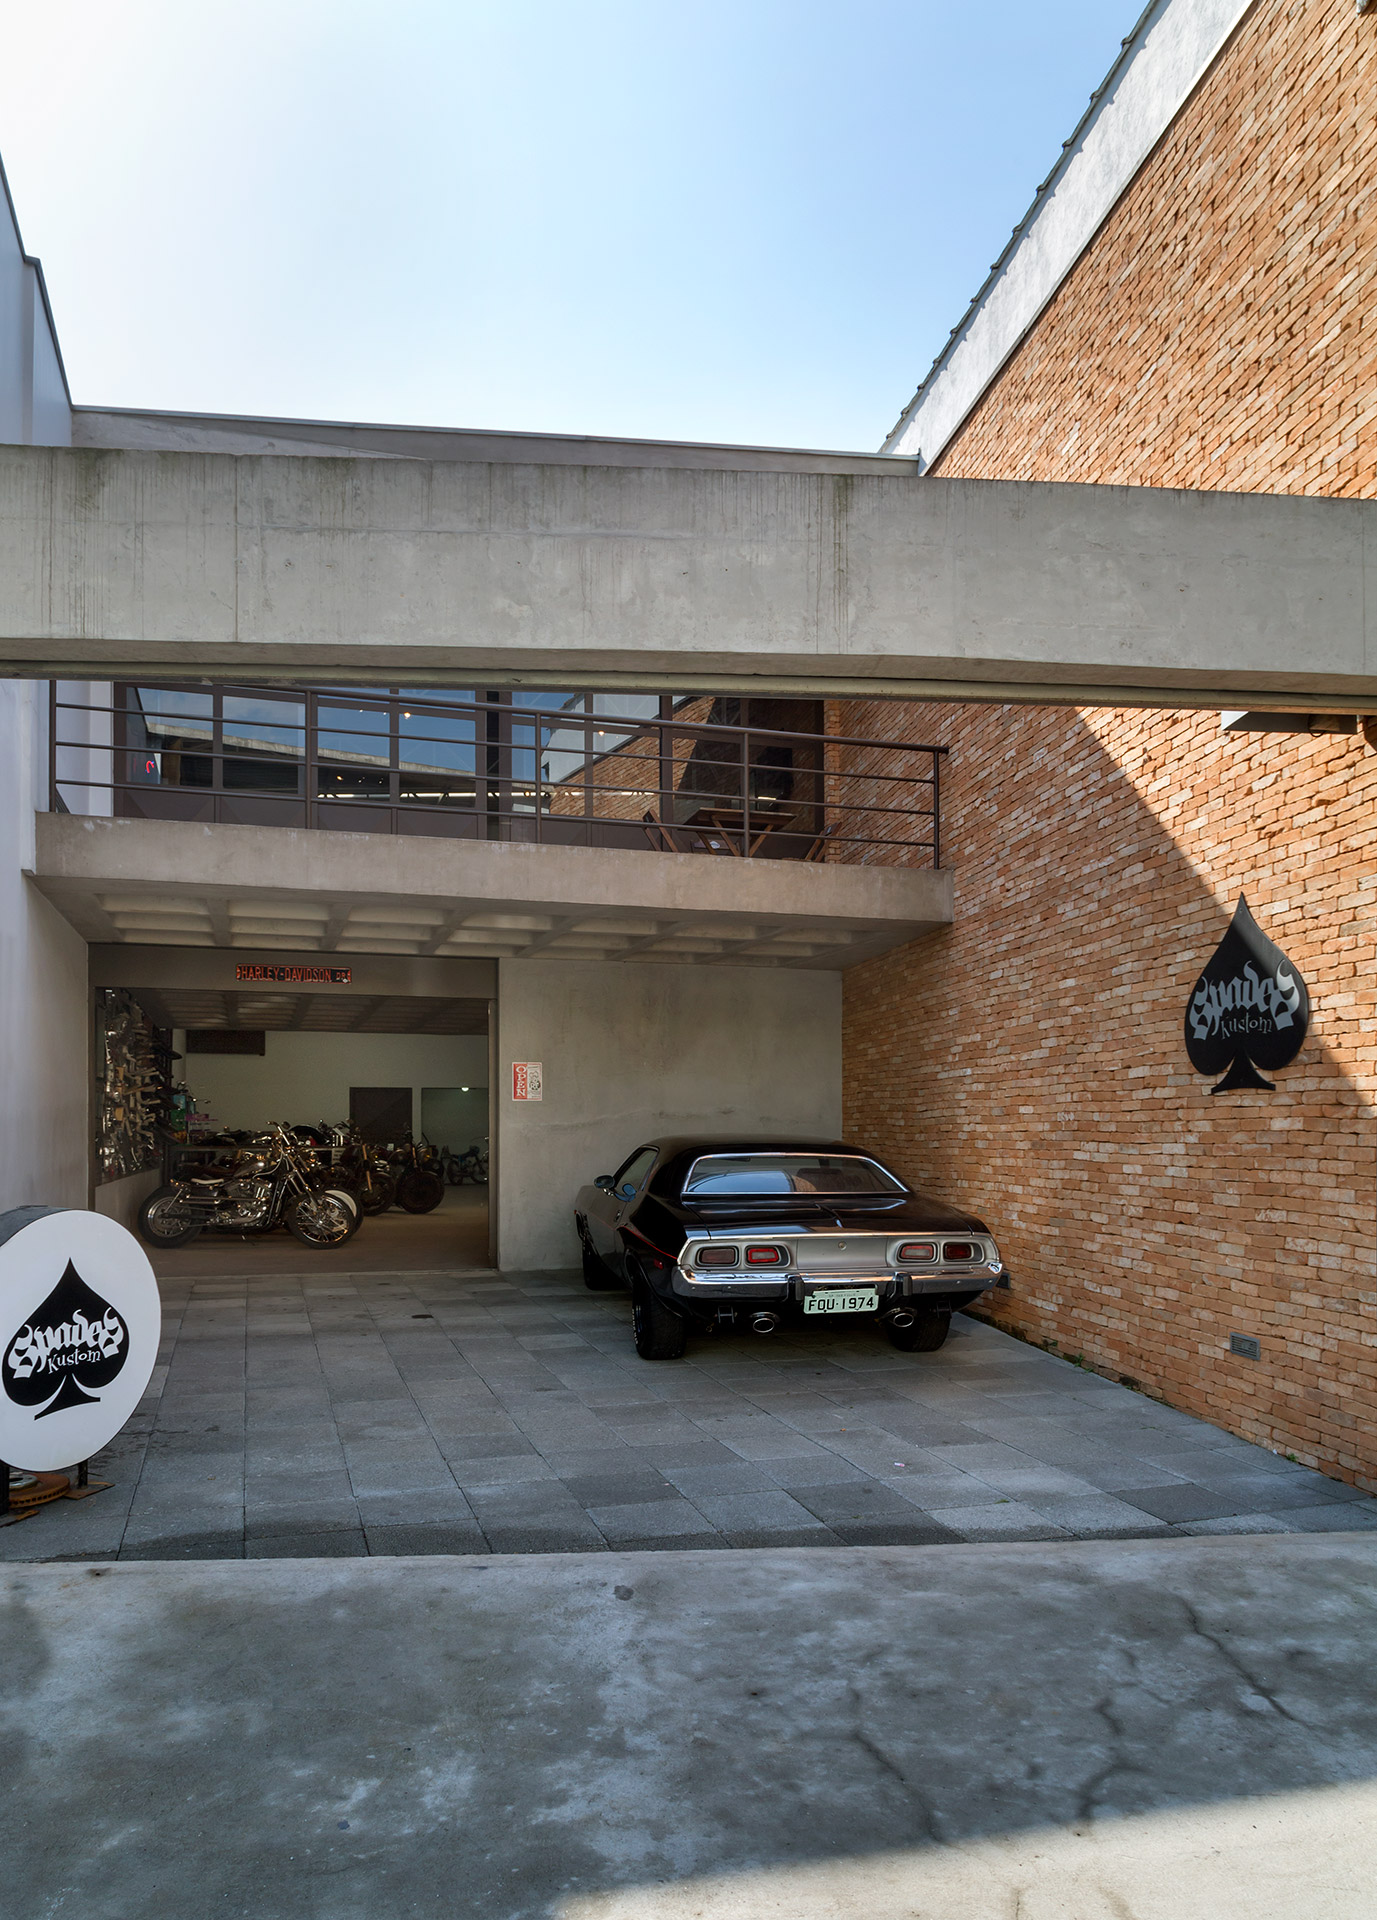 Spades-Custom-Cycles-d2n-arquitetura-1